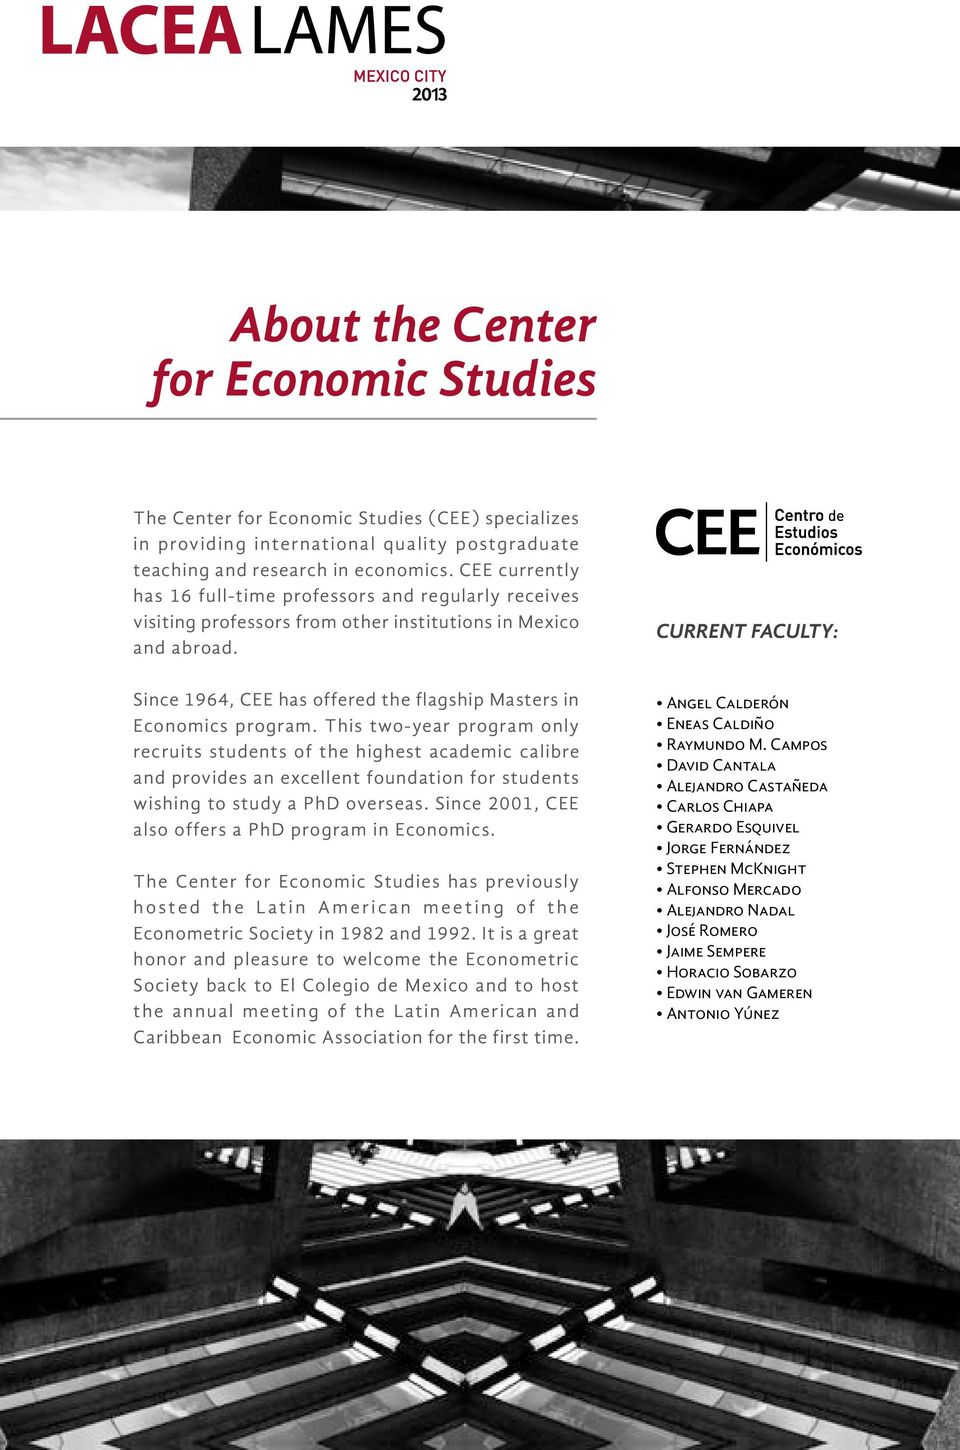 CURRENT FACULTY: Since 1964, CEE has offered the flagship Masters in Economics program.